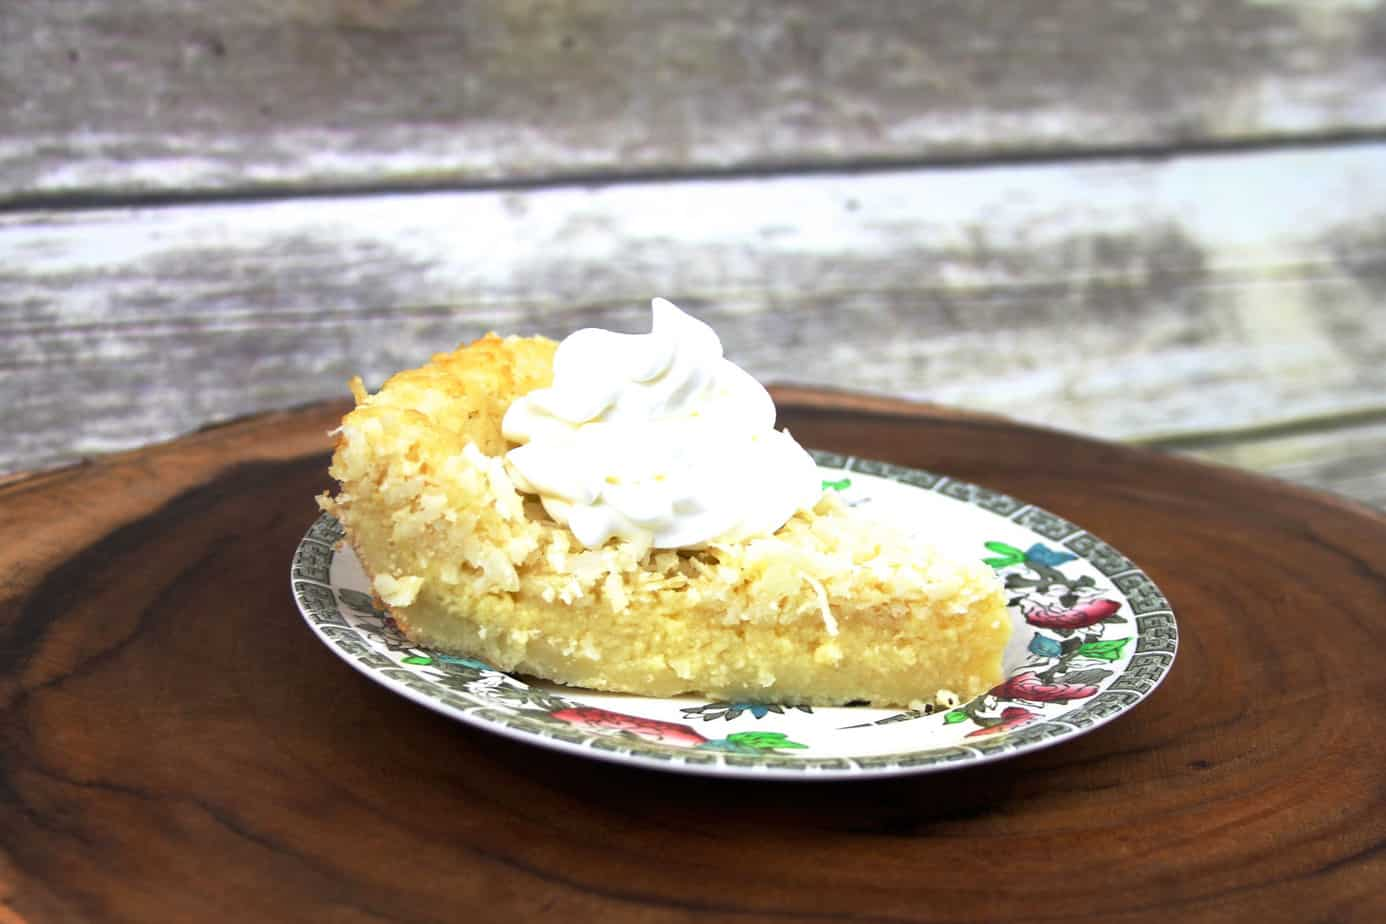 impossible pie |easy coconut custard pie |makes crust while baking